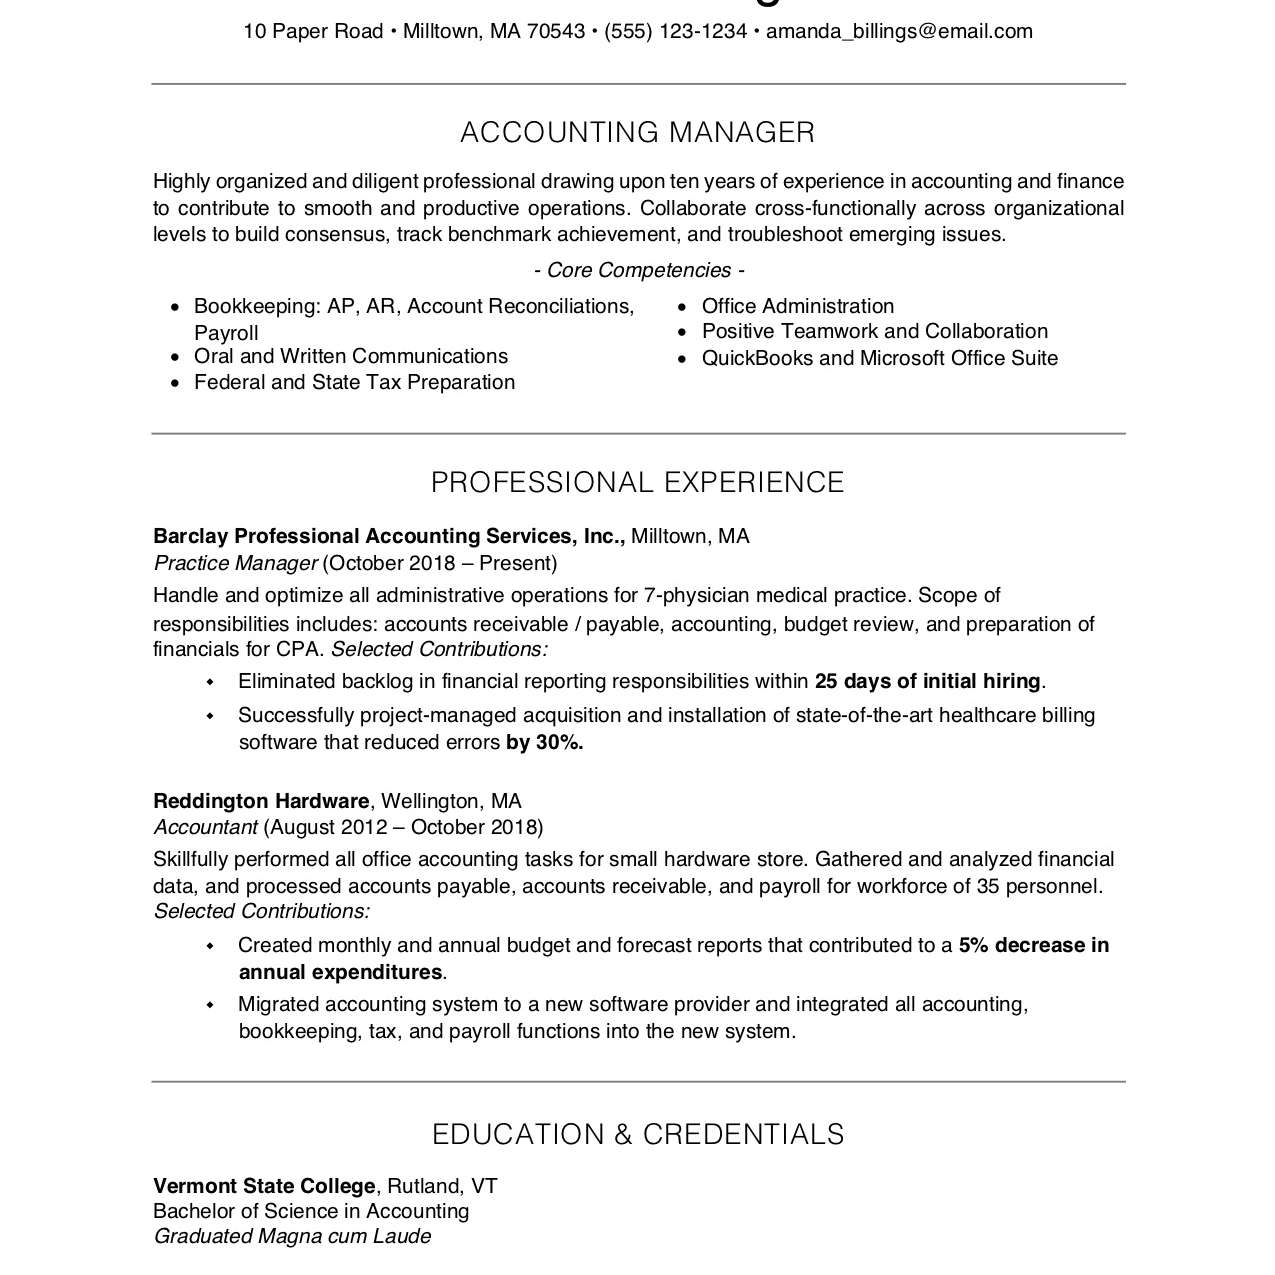 free professional resume examples and writing tips federal template 2063596res1 Resume Free Federal Resume Template